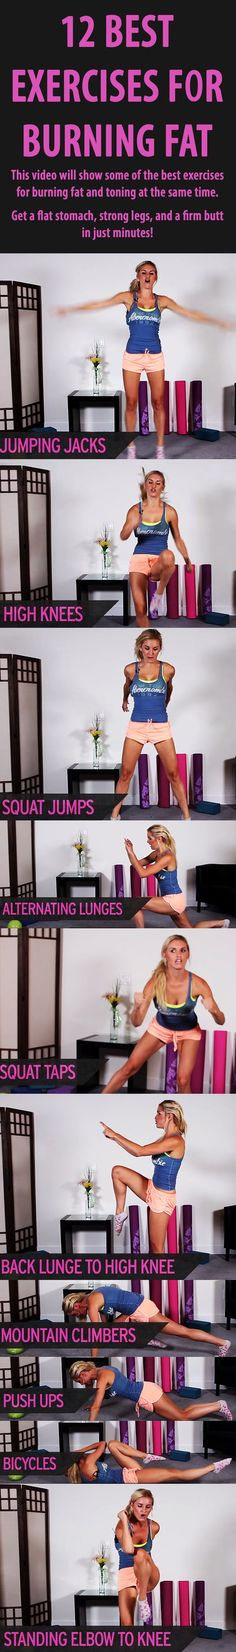 Calorie burning workout: 12 absolutely best exercises for BURNING FAT. #fatburn #weightloss #loseweight #bellyfat #fatburningworkout